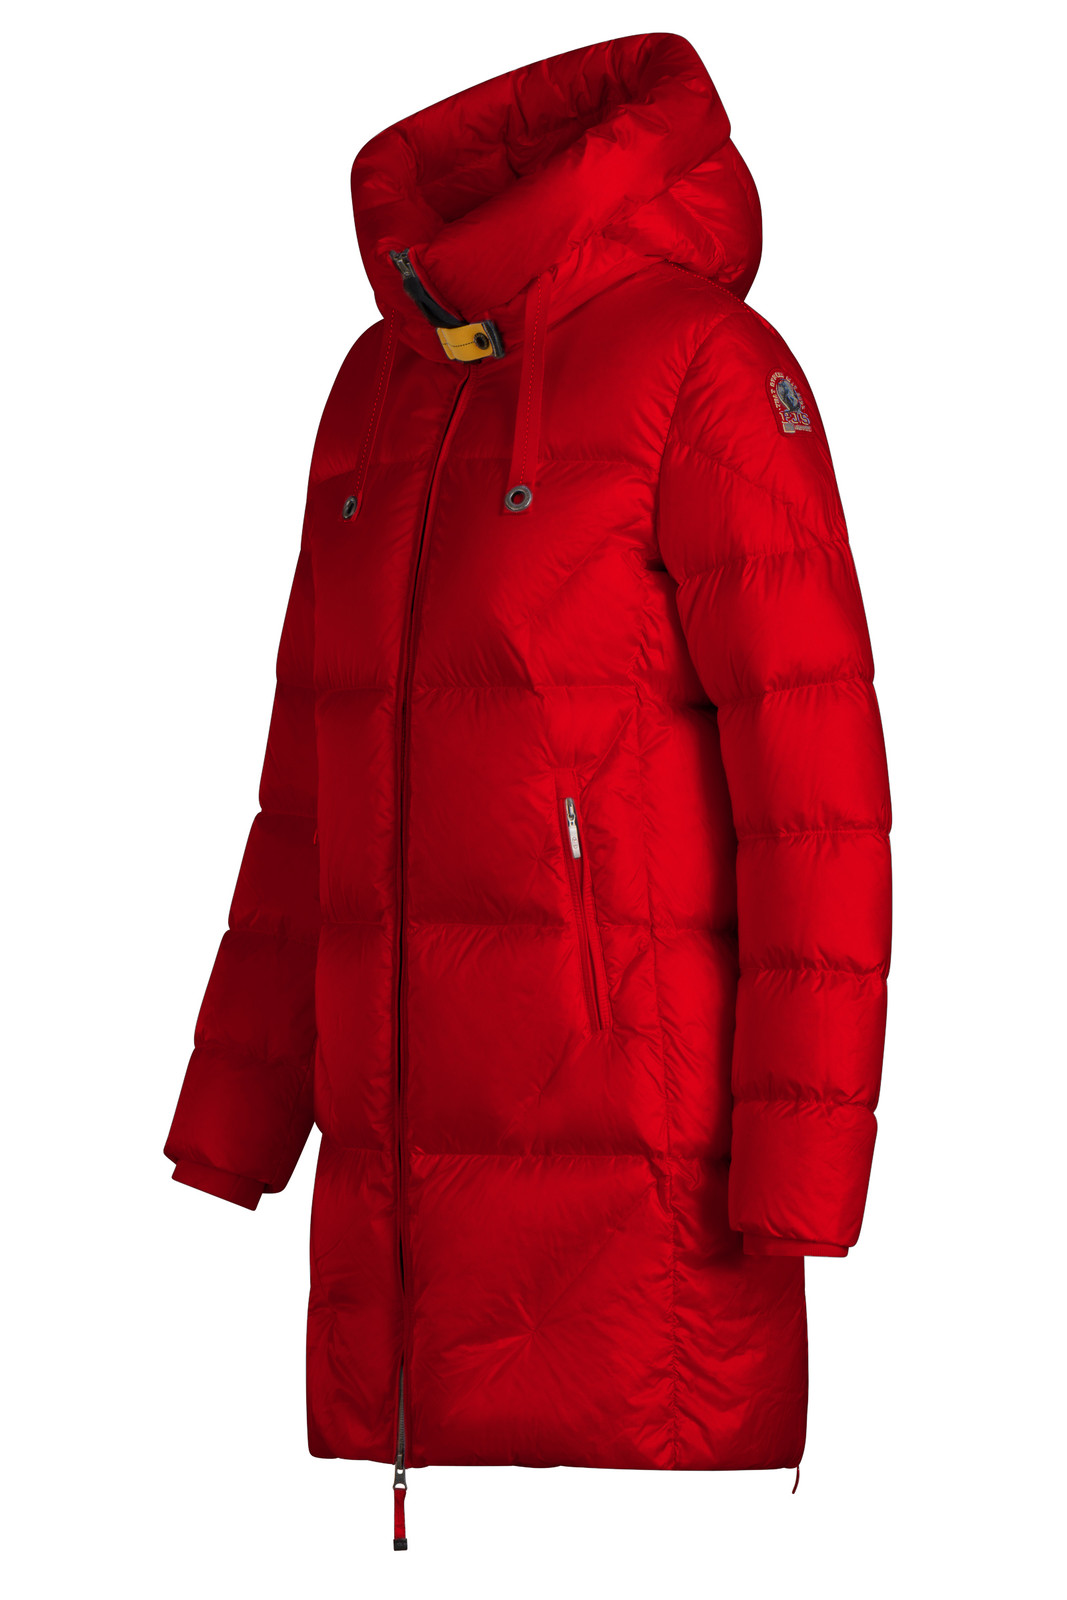 Parajumpers Janet Parka, Women's, Tomato